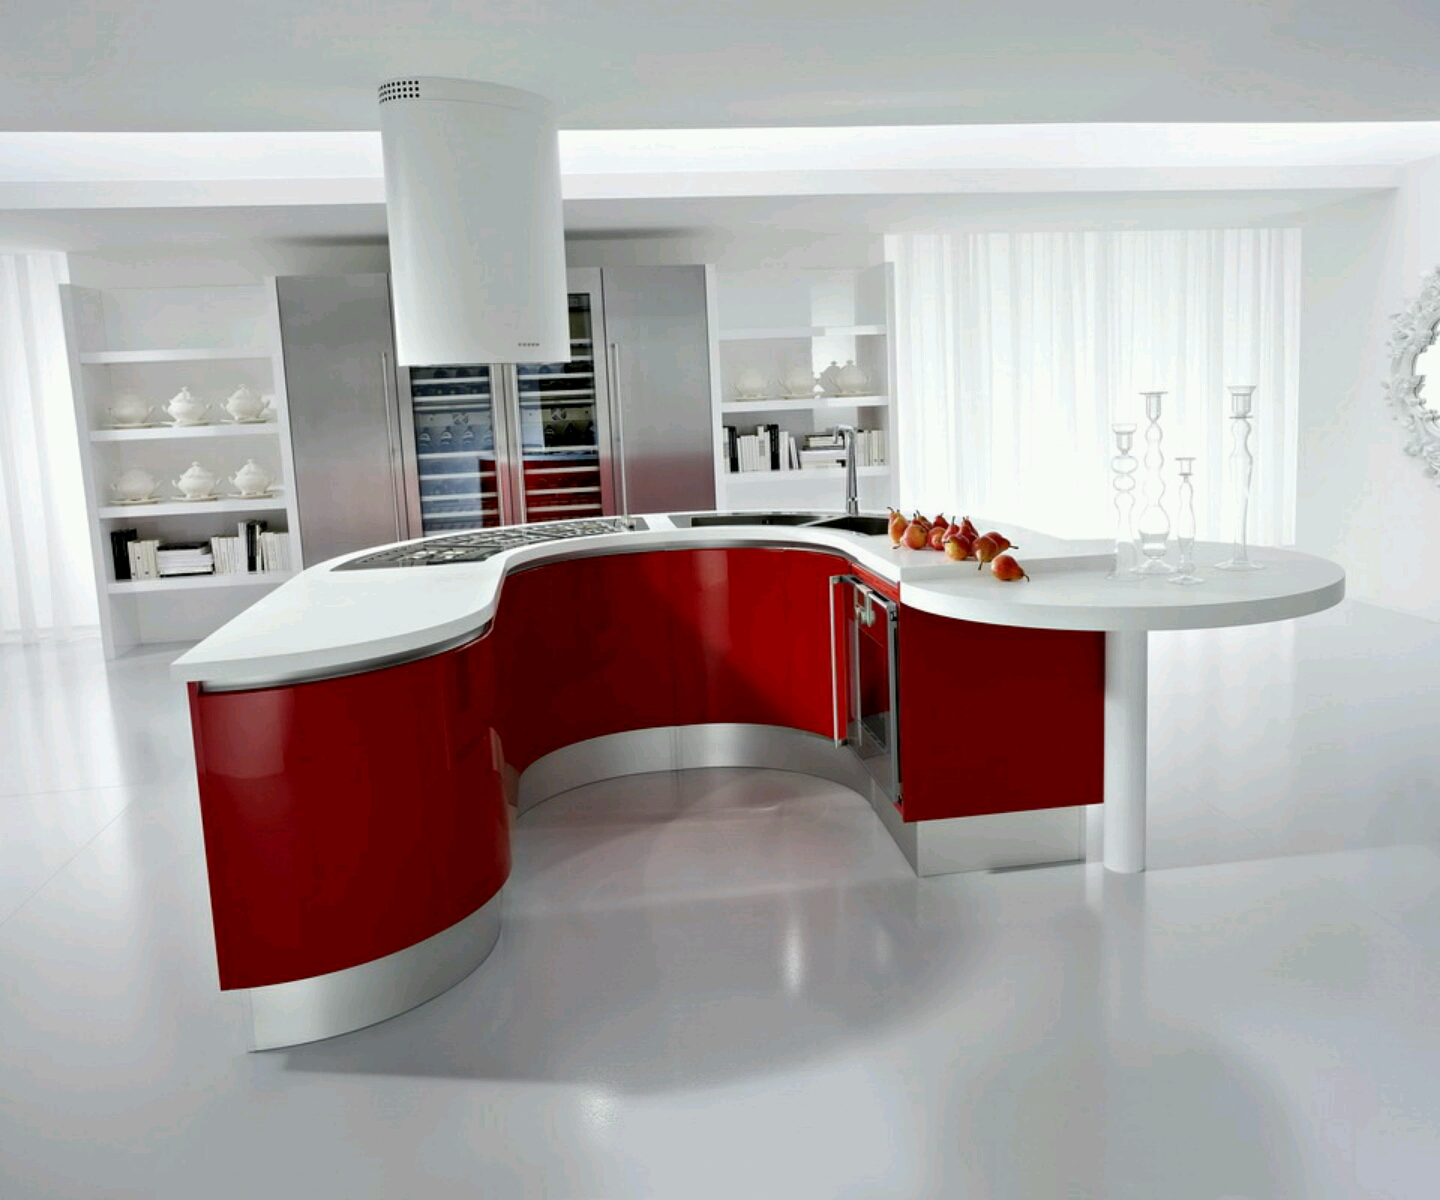 Modern kitchen cabinets designs ideas furniture gallery for Modern kitchen furniture design